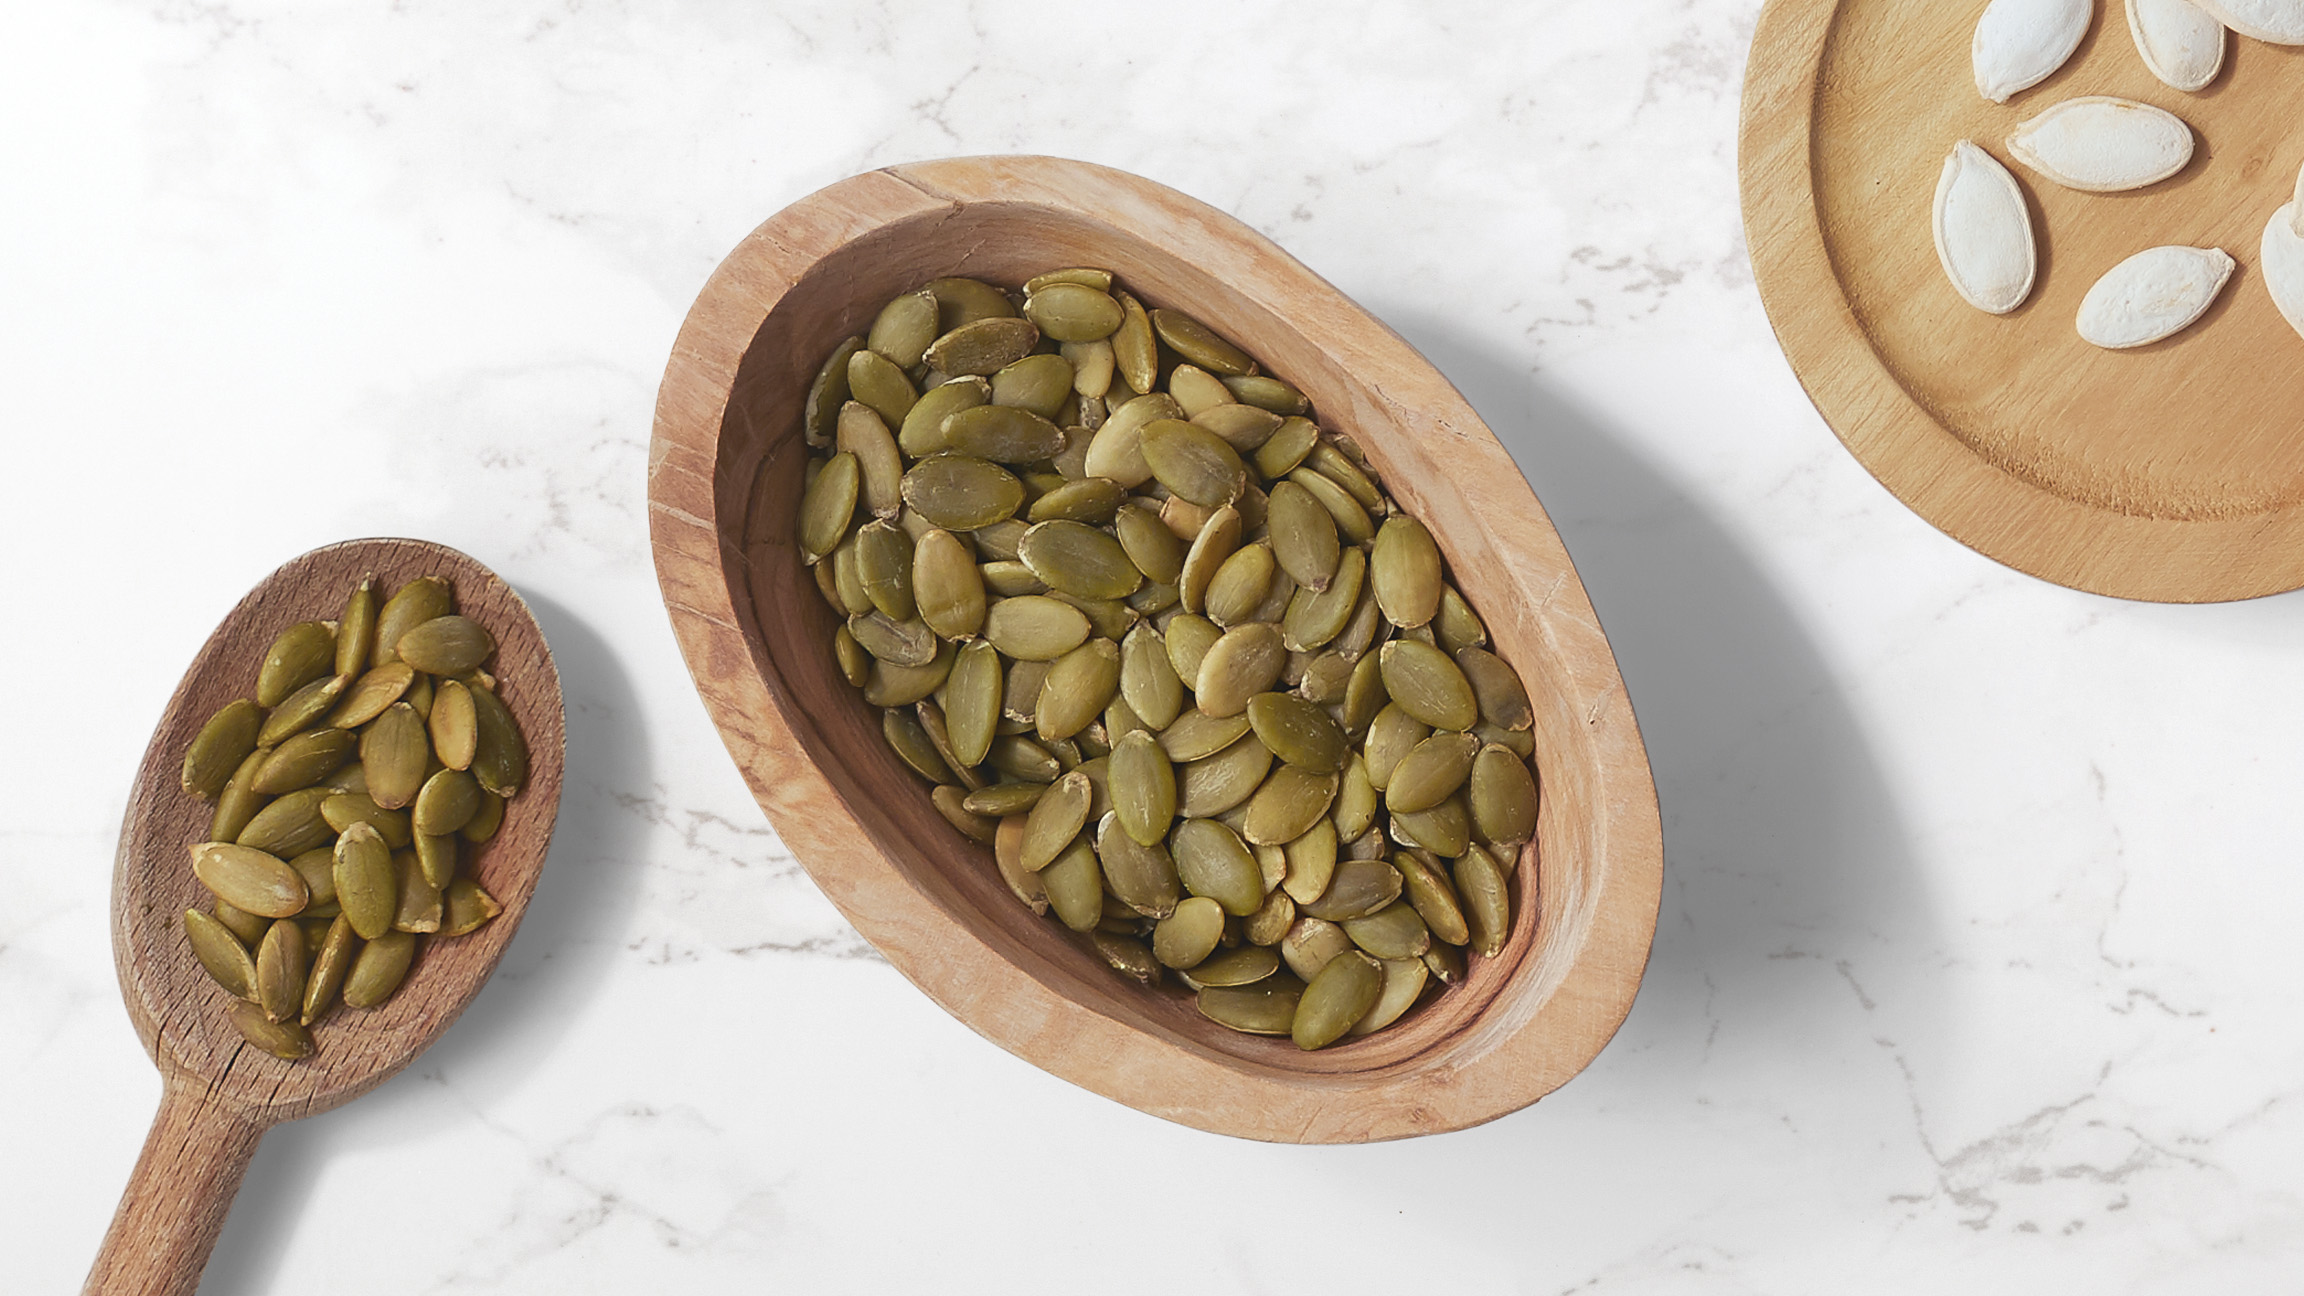 Pumpkin seeds in a wooden oval bowl accompanied with a wooden spoonful of pumpkin seeds on a white marble counter top